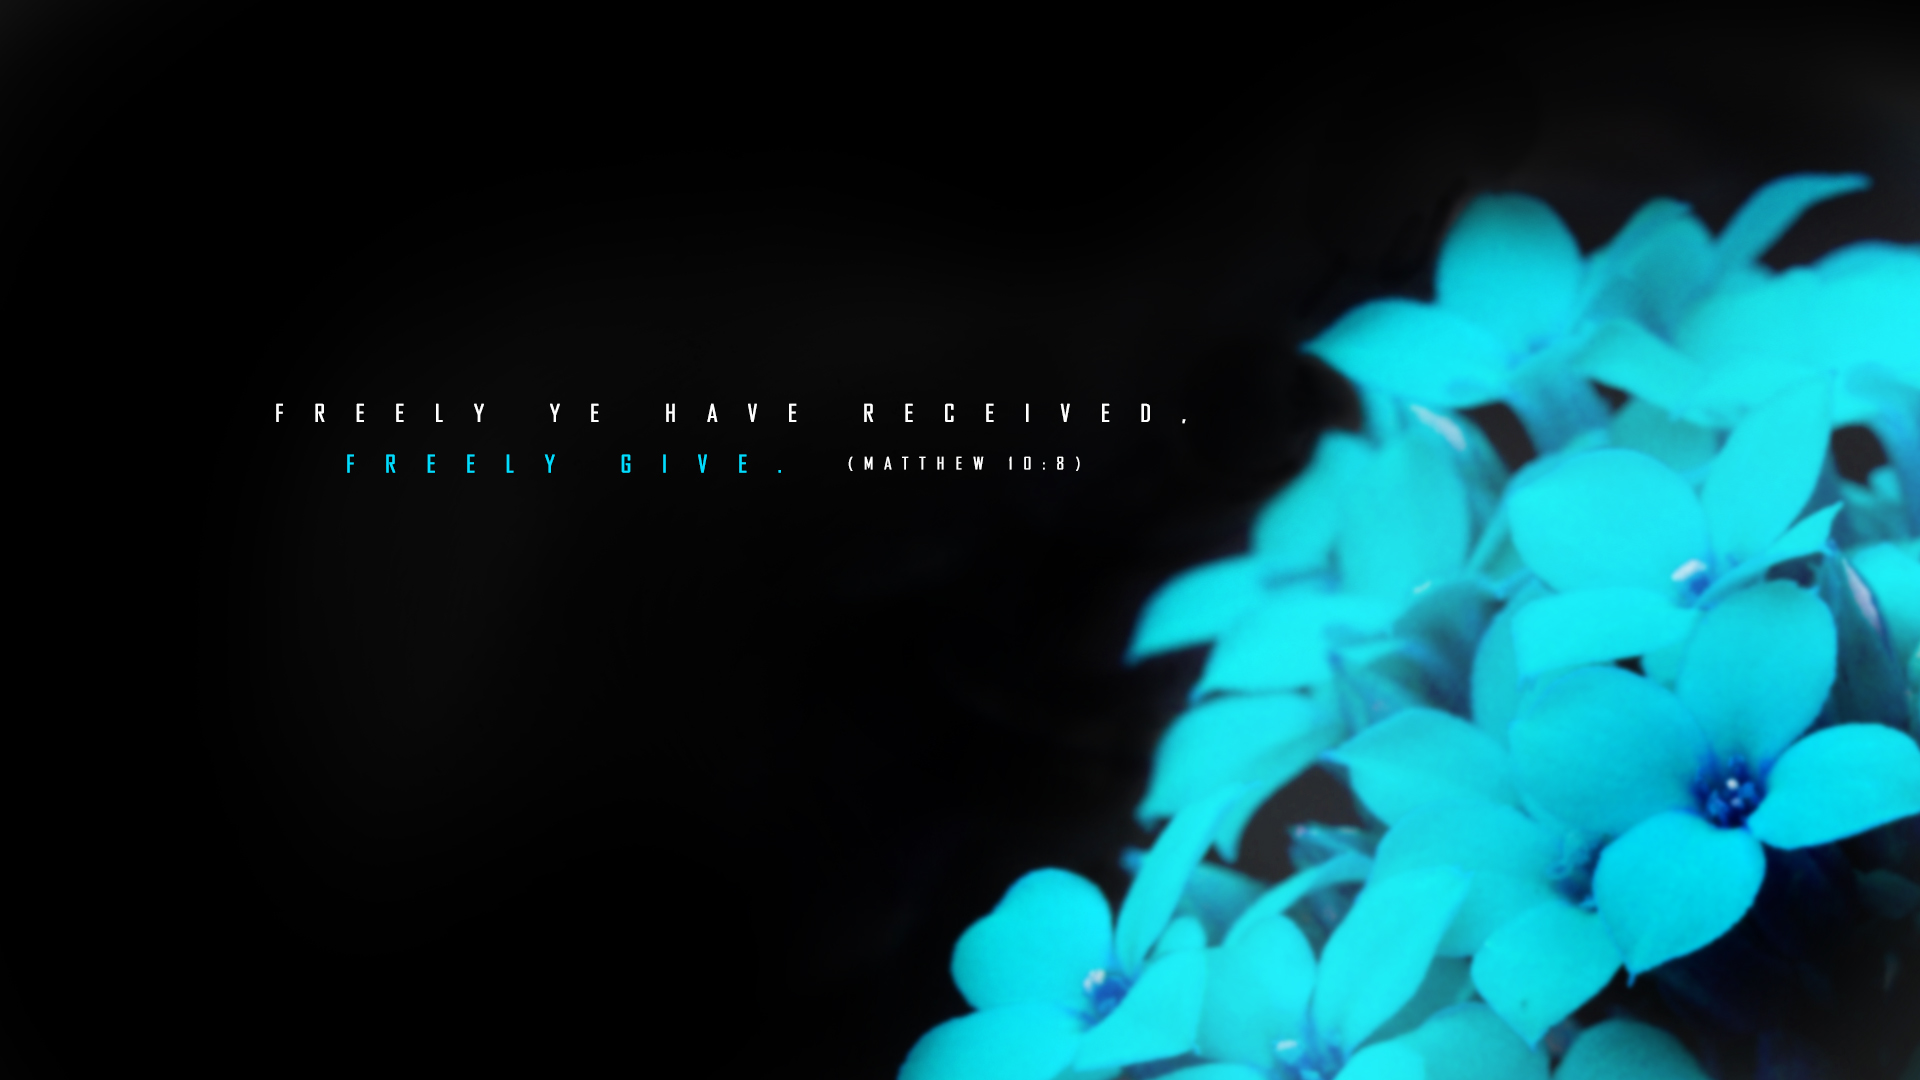 Blue Flower–Matthew 10:8–Wallpaper